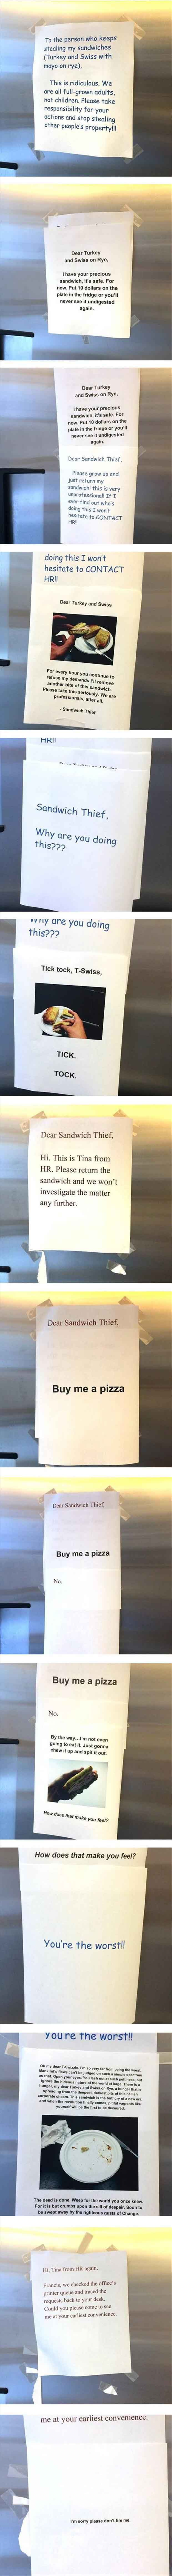 Sandwich Thief